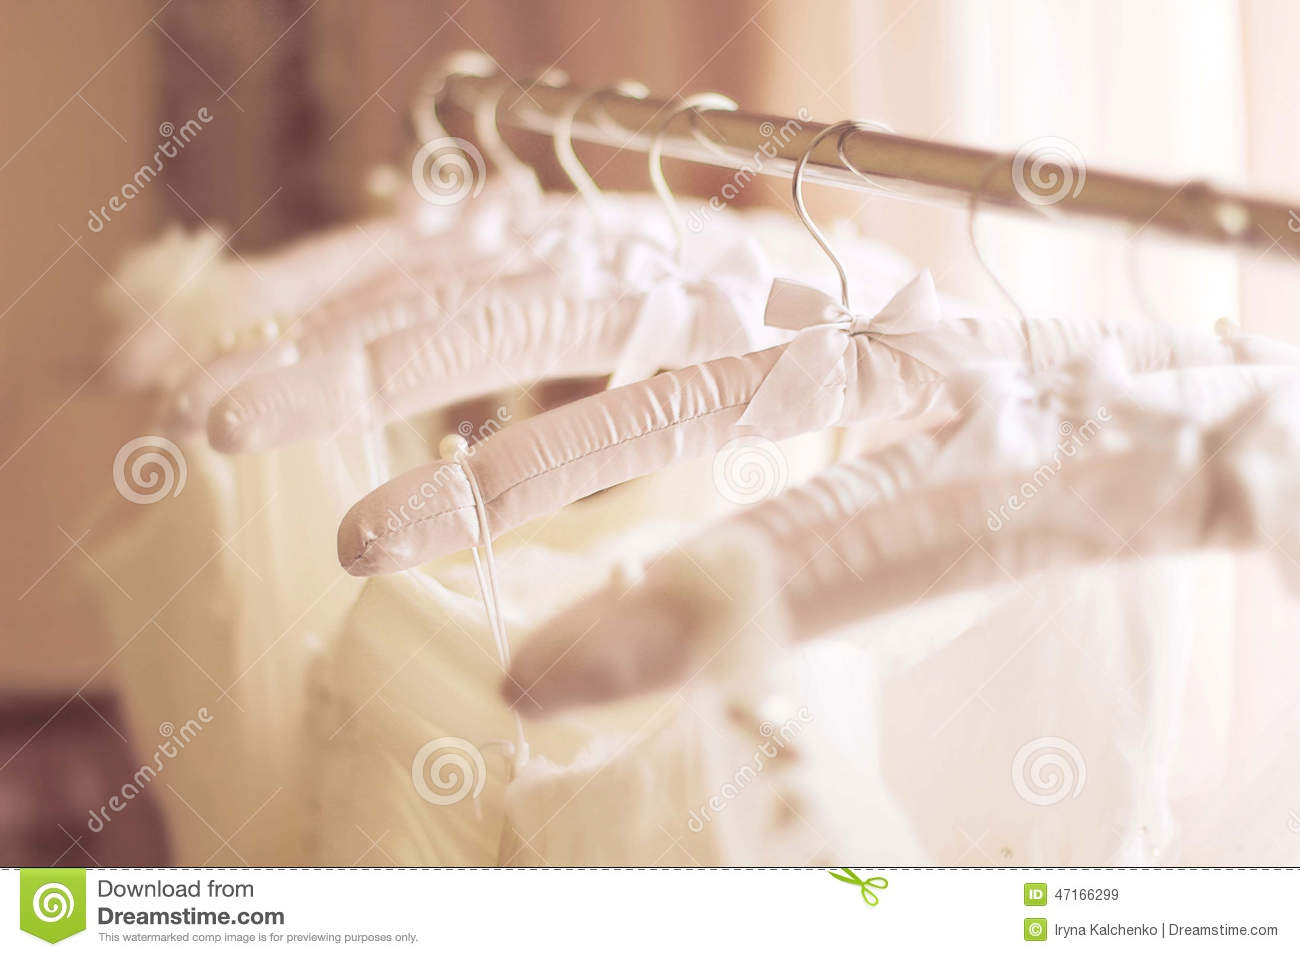 Beautiful White Wedding Dresses Made Of Silk On Hangers Stock Photo Image 47166299